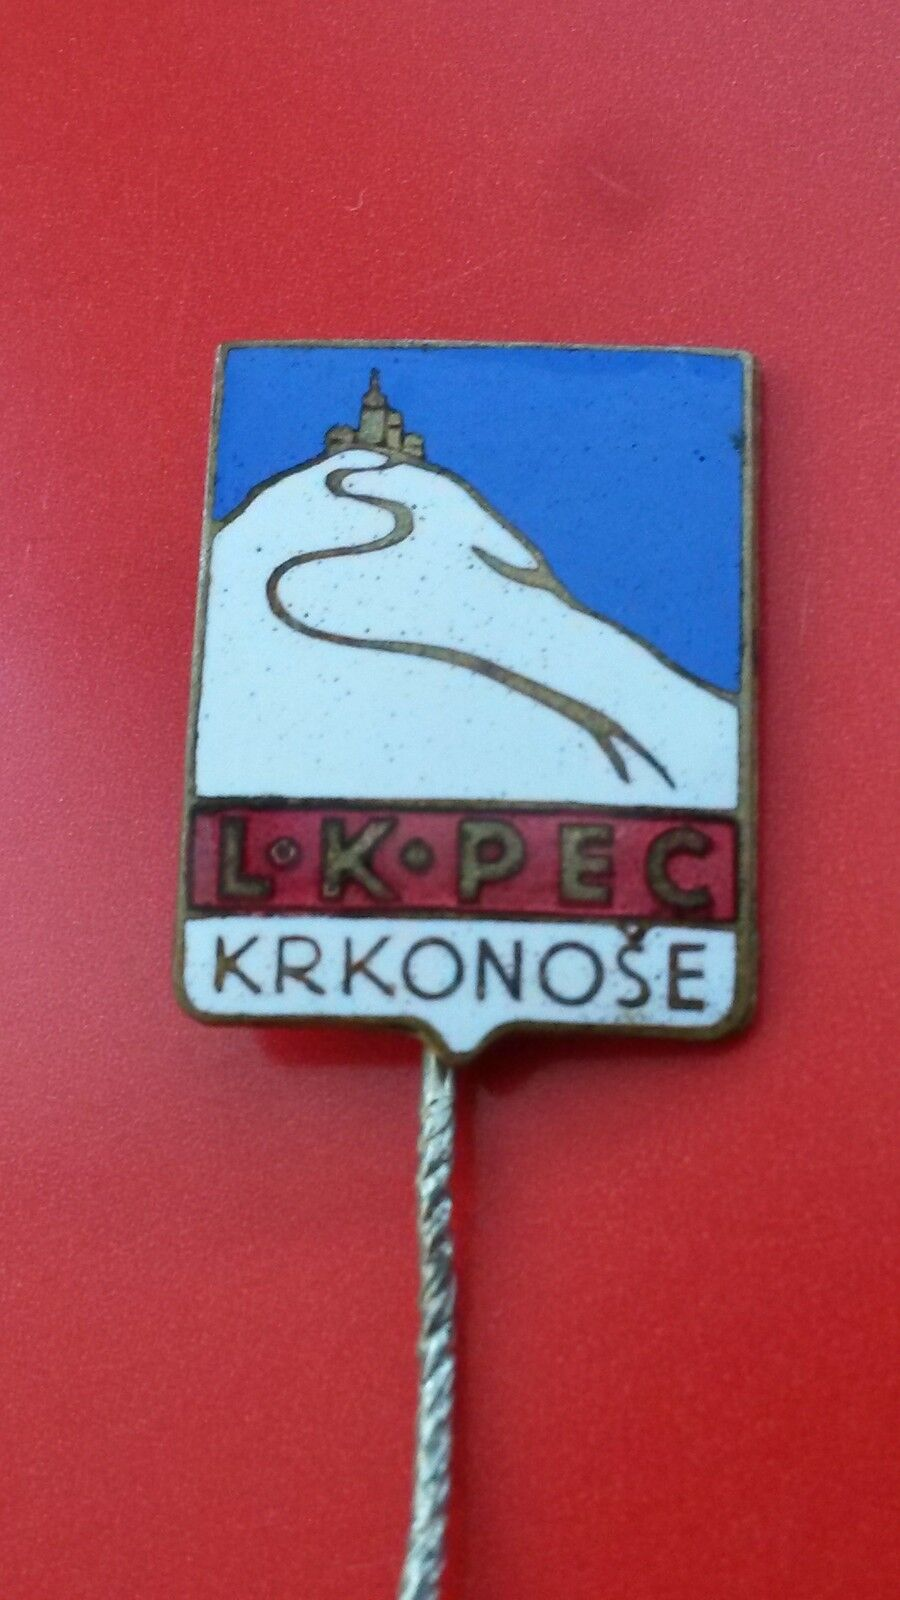 LK Pec Krkonose  ski club vintage enameling badge from 1930´s